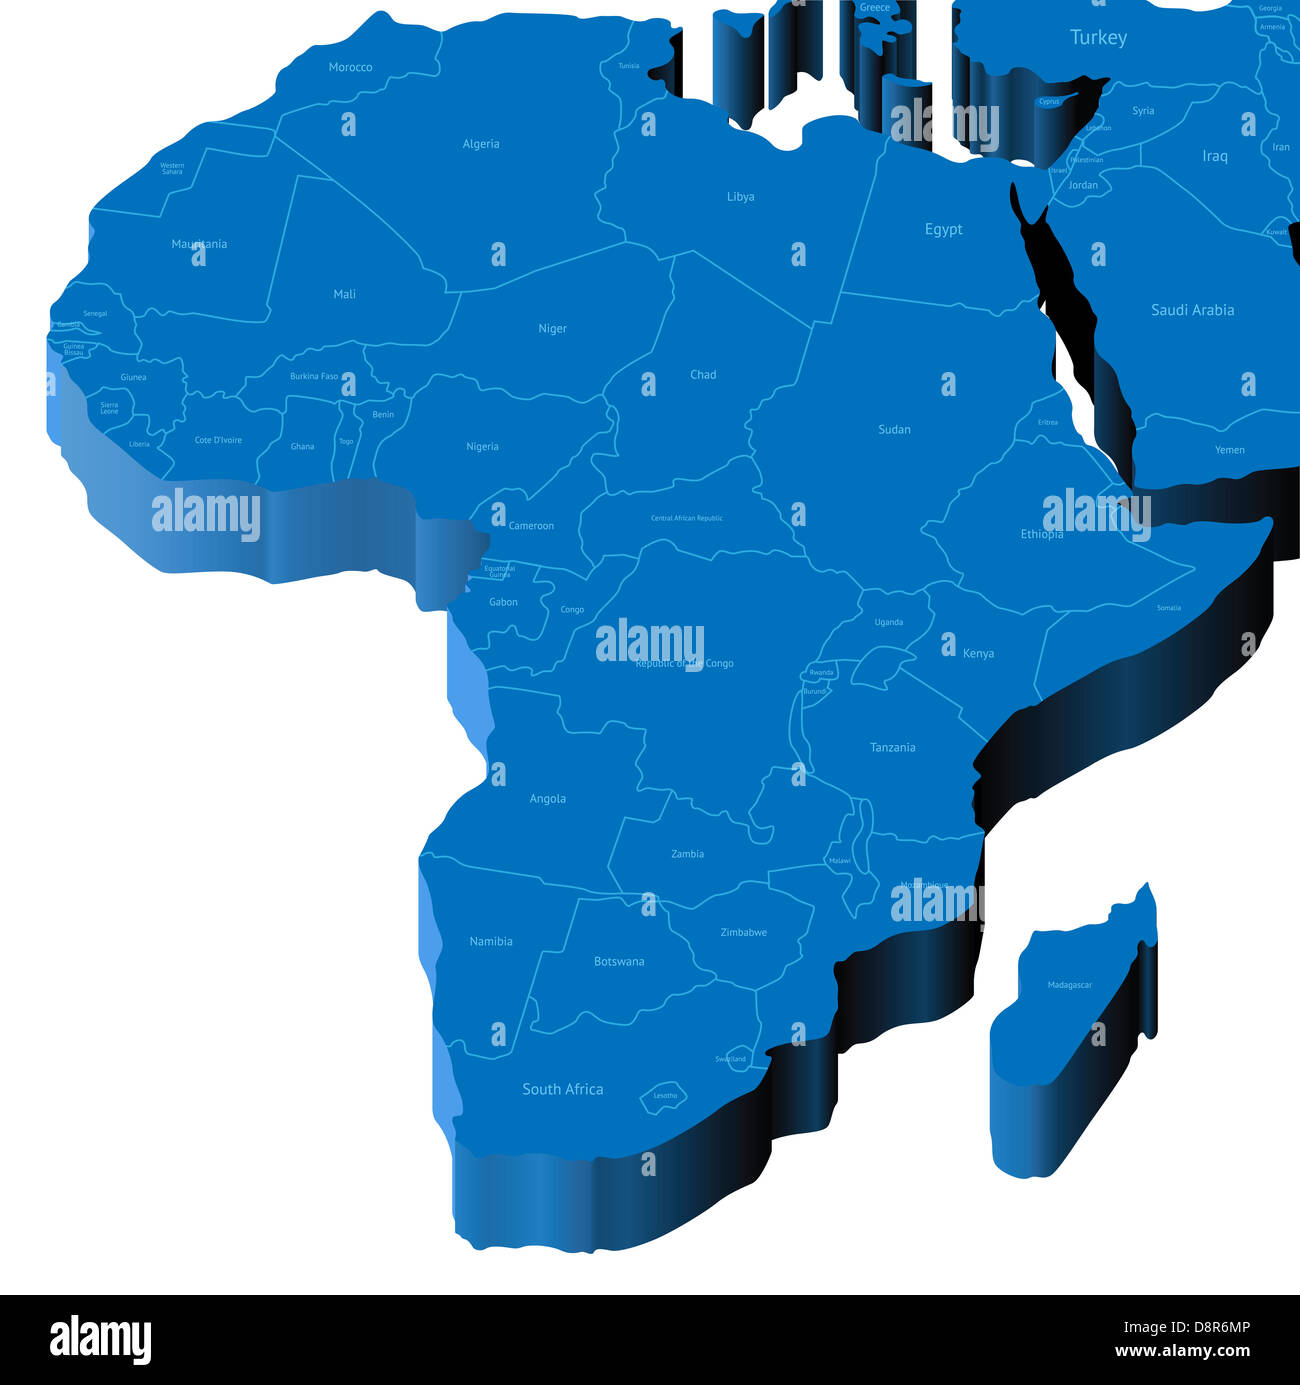 Map of Africa with national borders and country names. Stock Photo